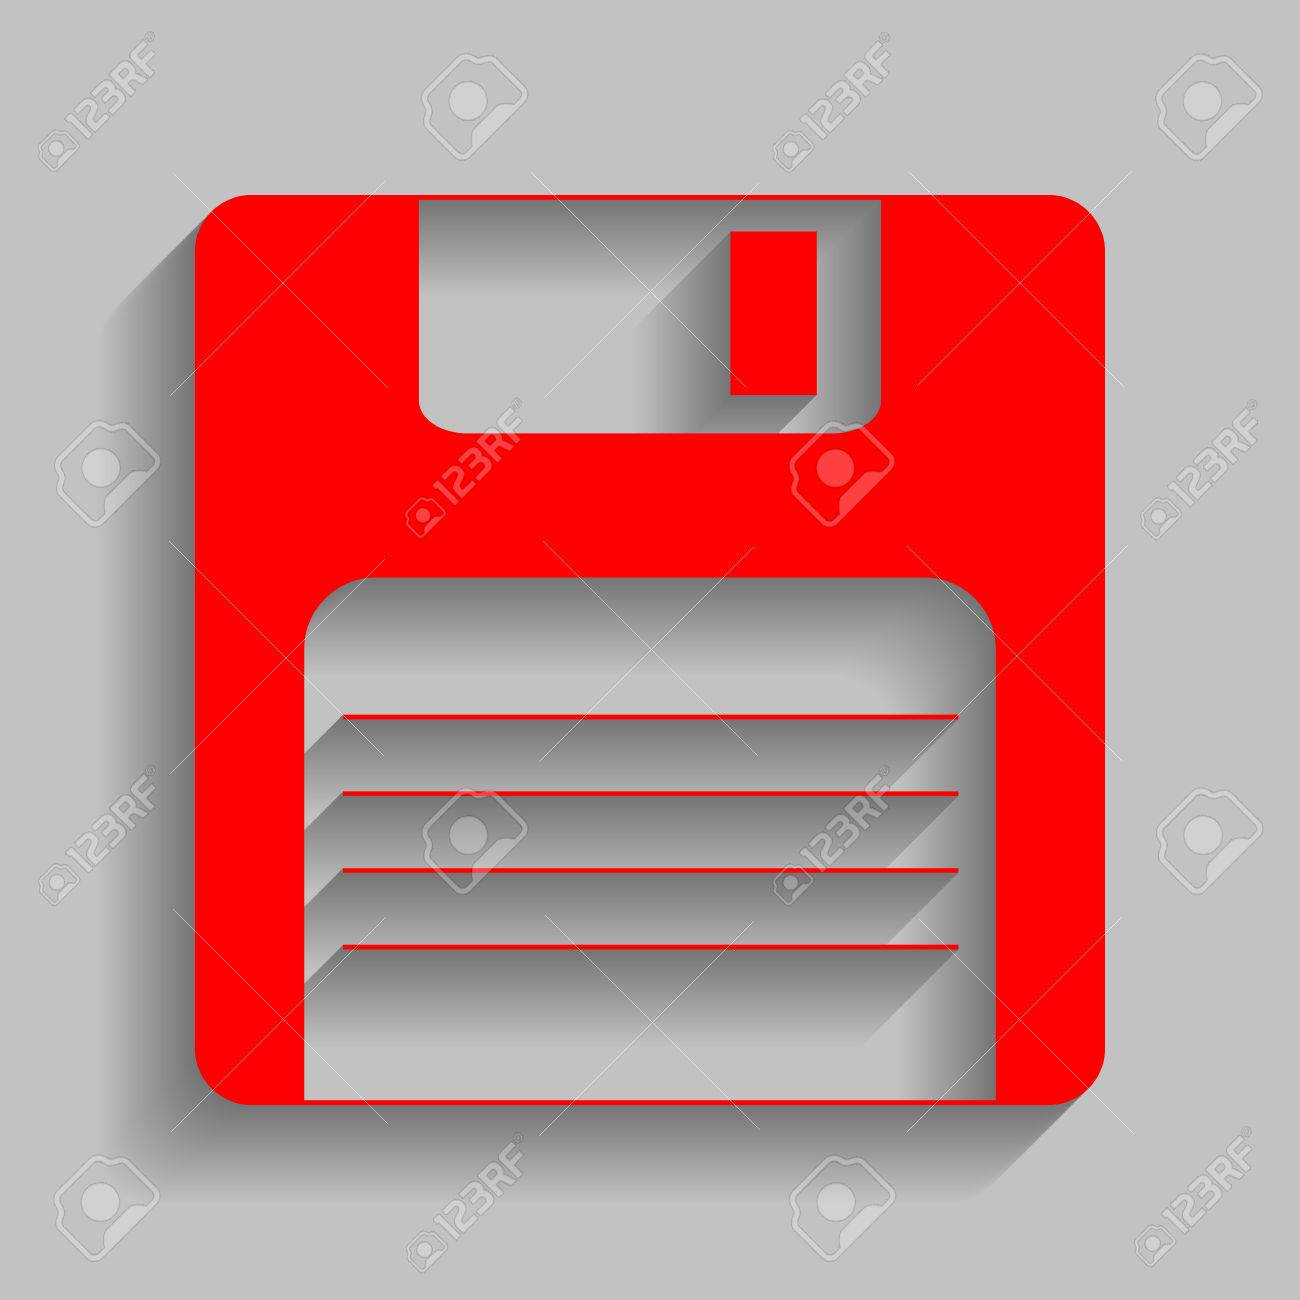 Floppy disk sign. Vector. Red icon with soft shadow on gray background. - 72525406